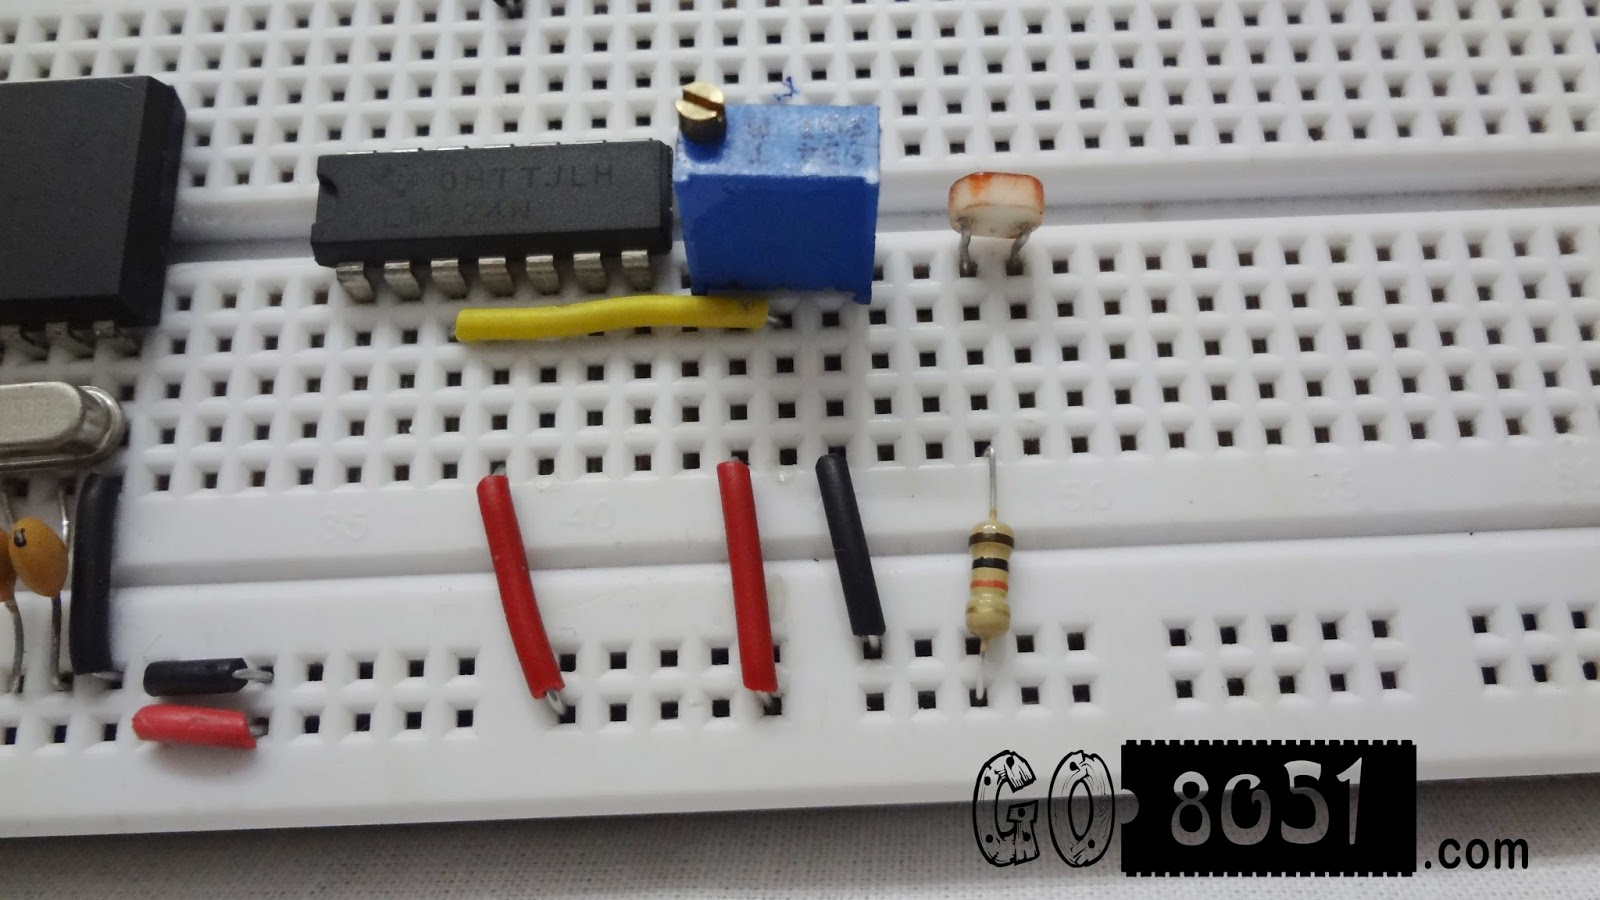 Chapter 54 Interfacing Lm324 Comparator Ic With Ldrlight Dependent Resistor Sensor On Bread Board